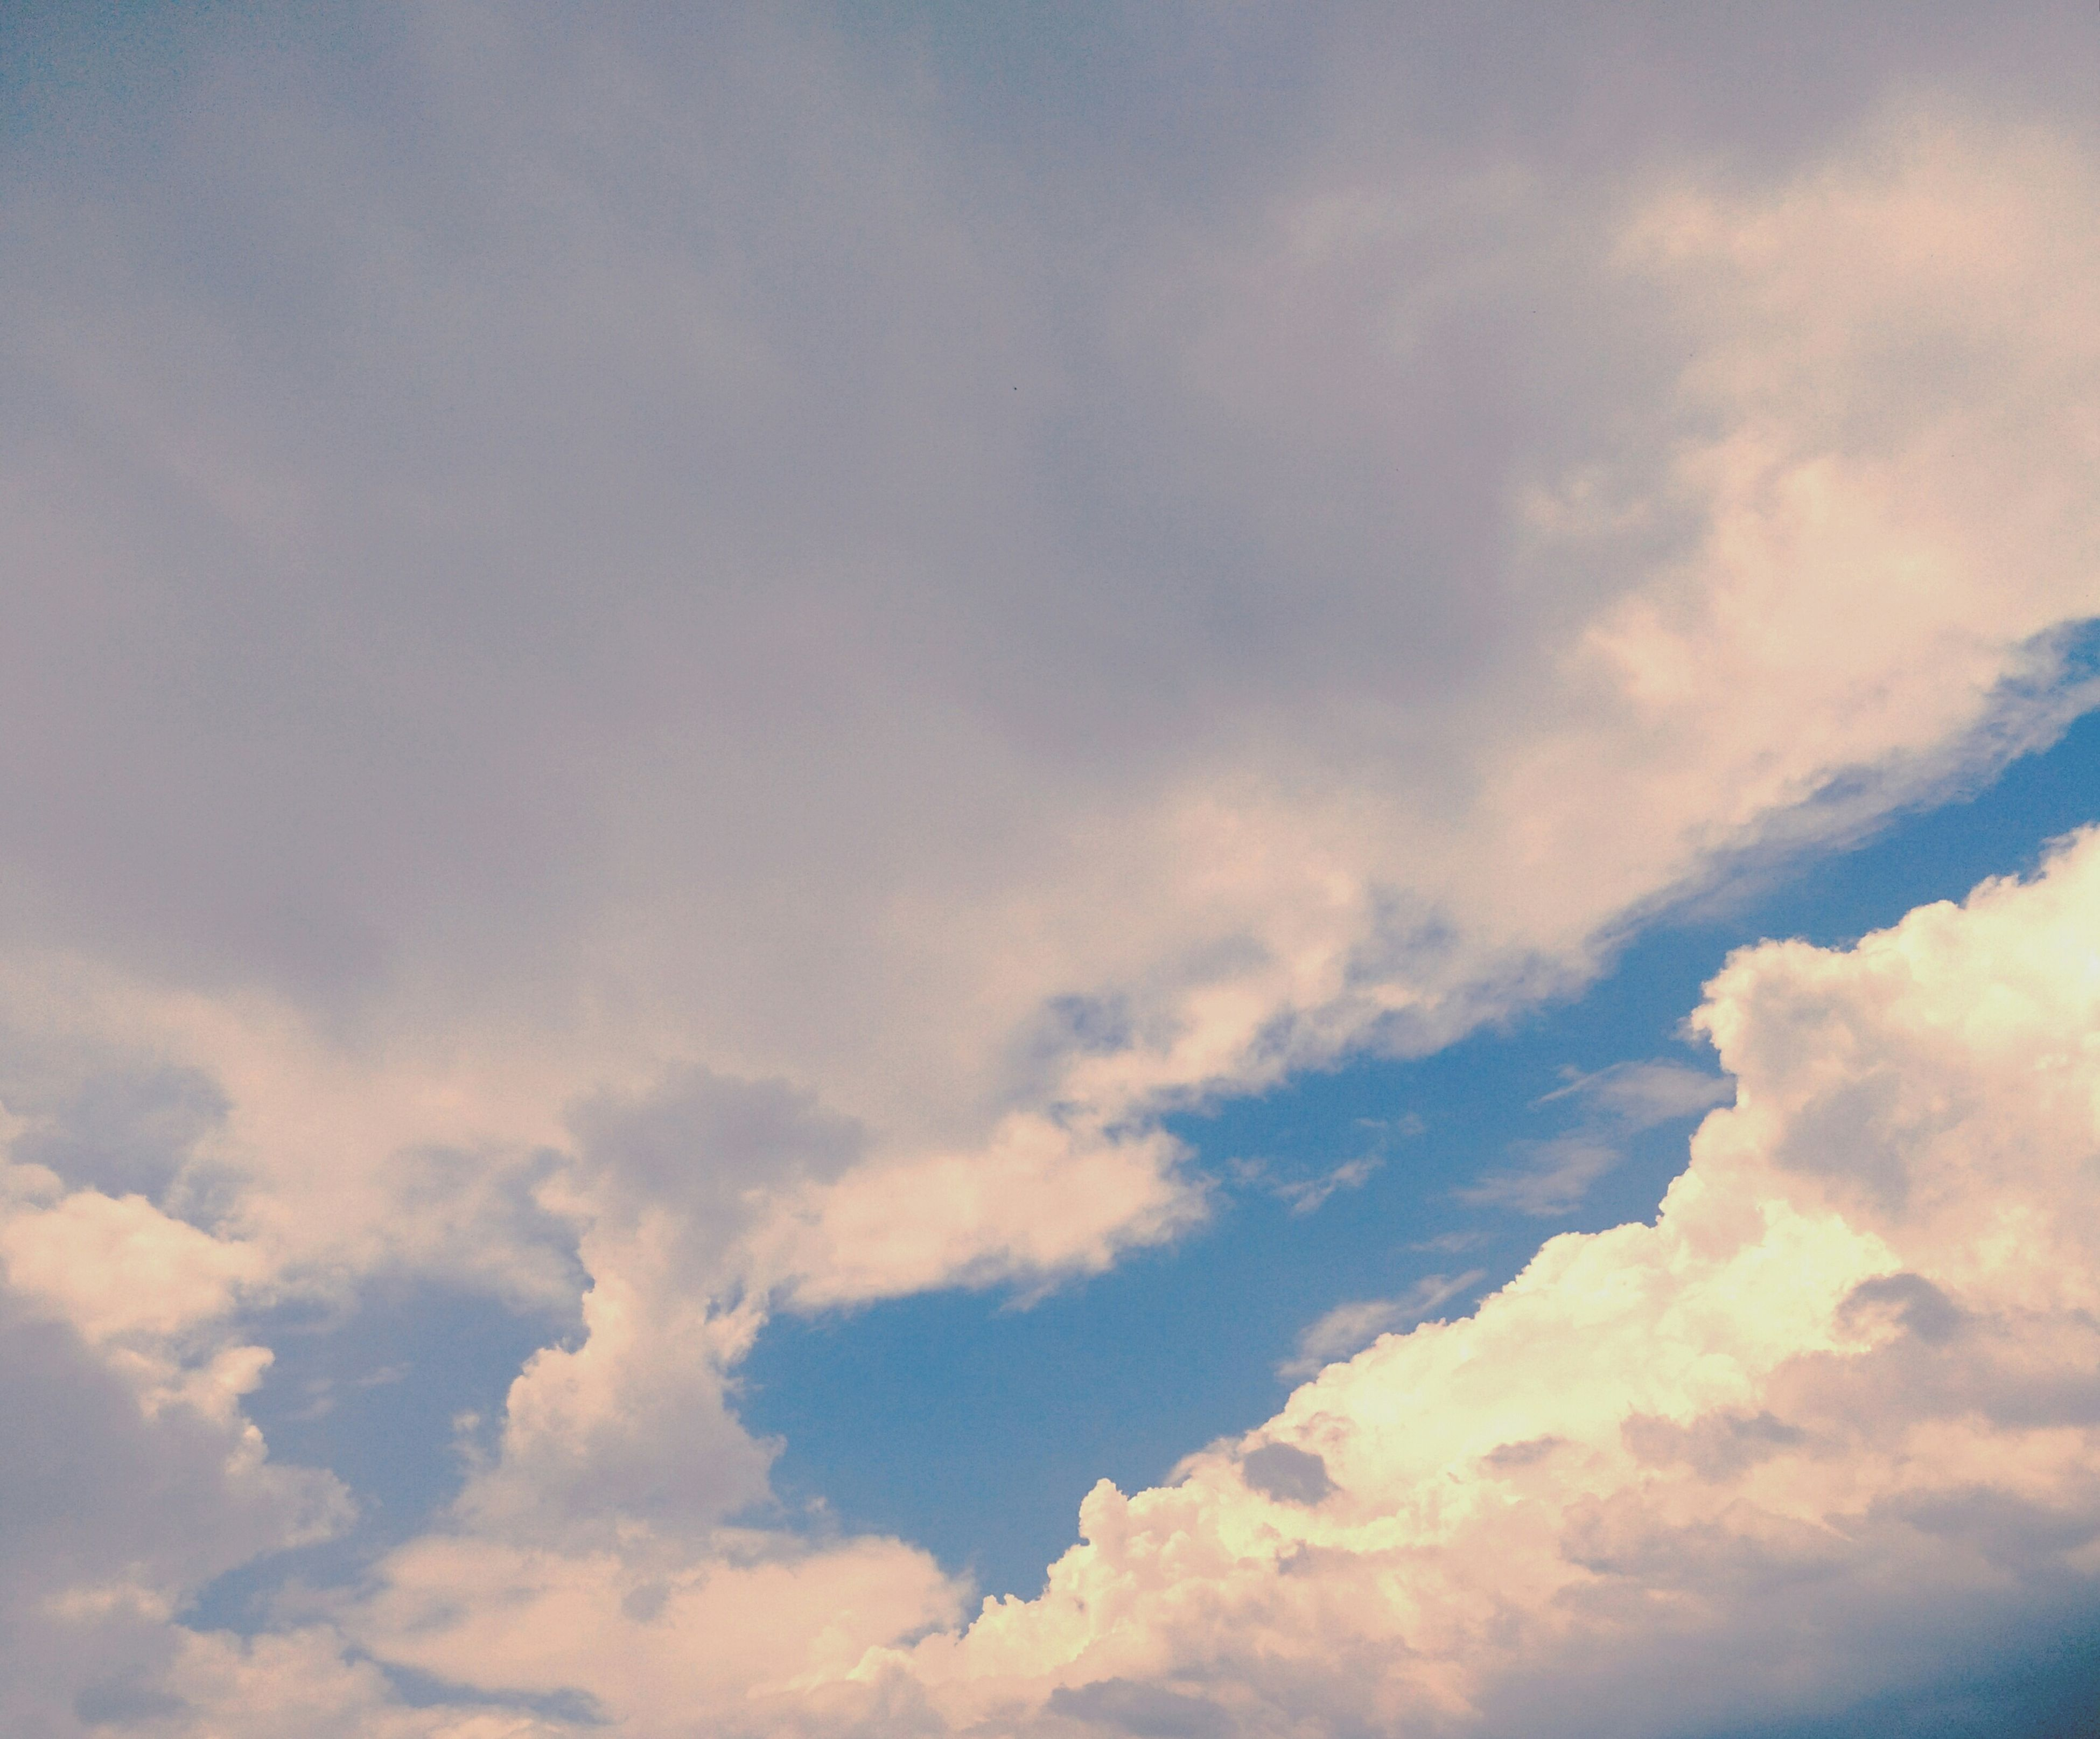 sky, cloud - sky, sky only, low angle view, beauty in nature, tranquility, scenics, cloudy, tranquil scene, nature, backgrounds, cloudscape, full frame, cloud, idyllic, white color, blue, outdoors, weather, no people